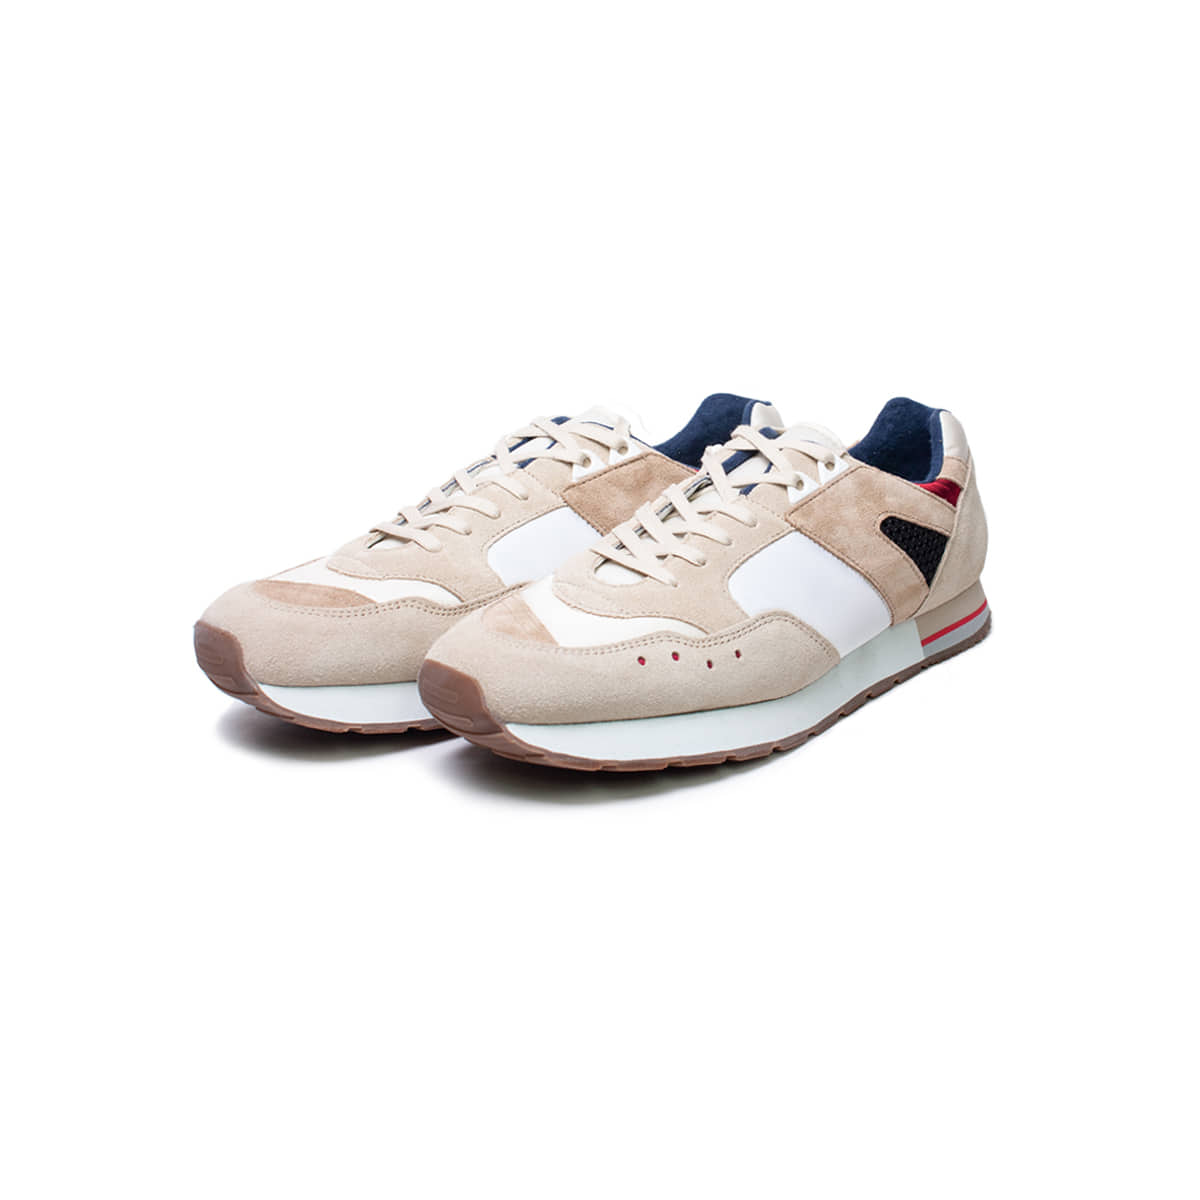 [REPRODUCTION OF FOUND] FRENCH MILITARY TRAINER 'WHITE BEIGE'